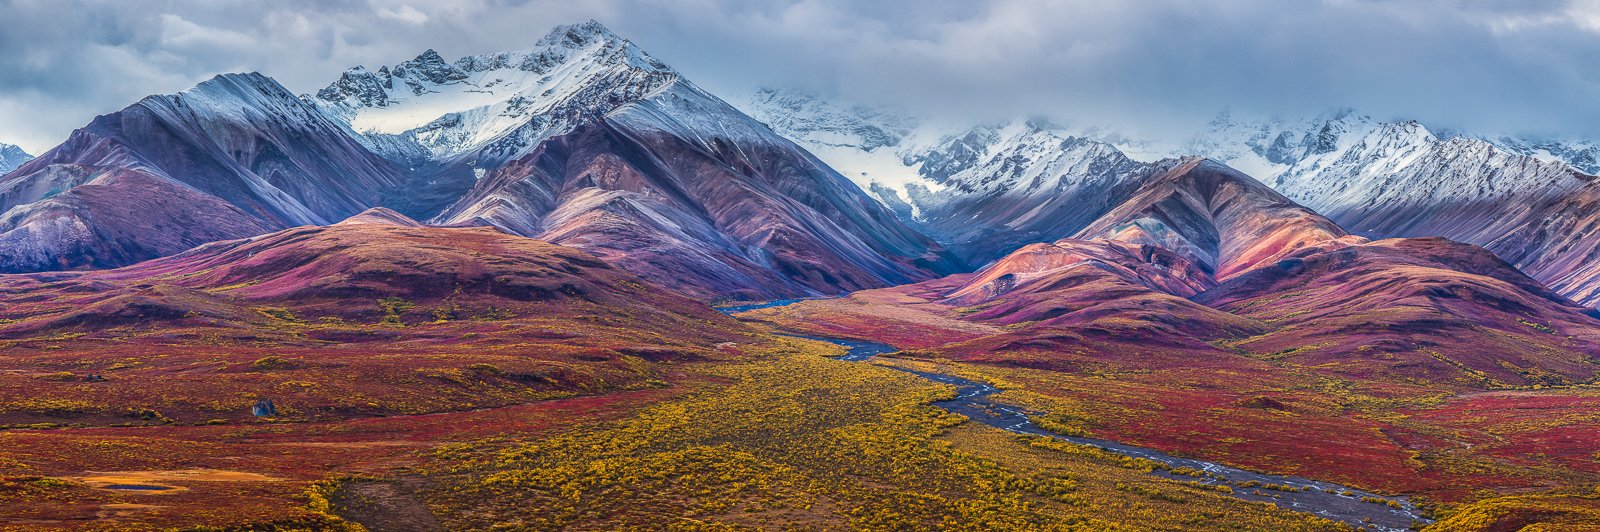 Autumns Rainbow,Denali National Park, Alaska,rainbow,autumn,panoramic,horizontal,brown, blue, landscape, photo